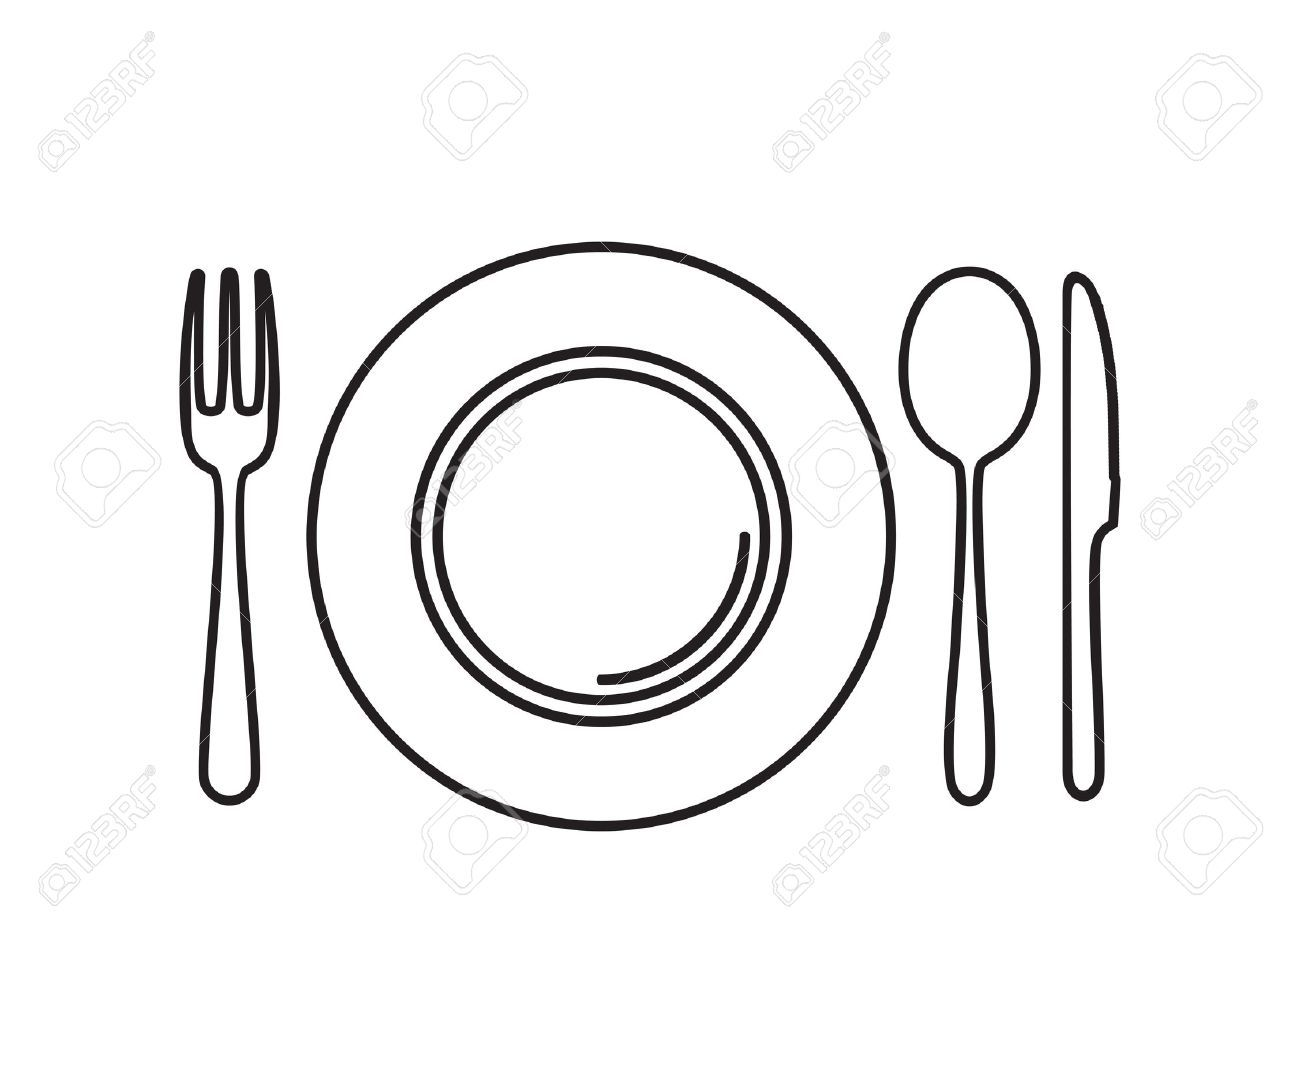 Plate and silverware clipart clipart freeuse Plate and silverware clipart 4 » Clipart Portal clipart freeuse